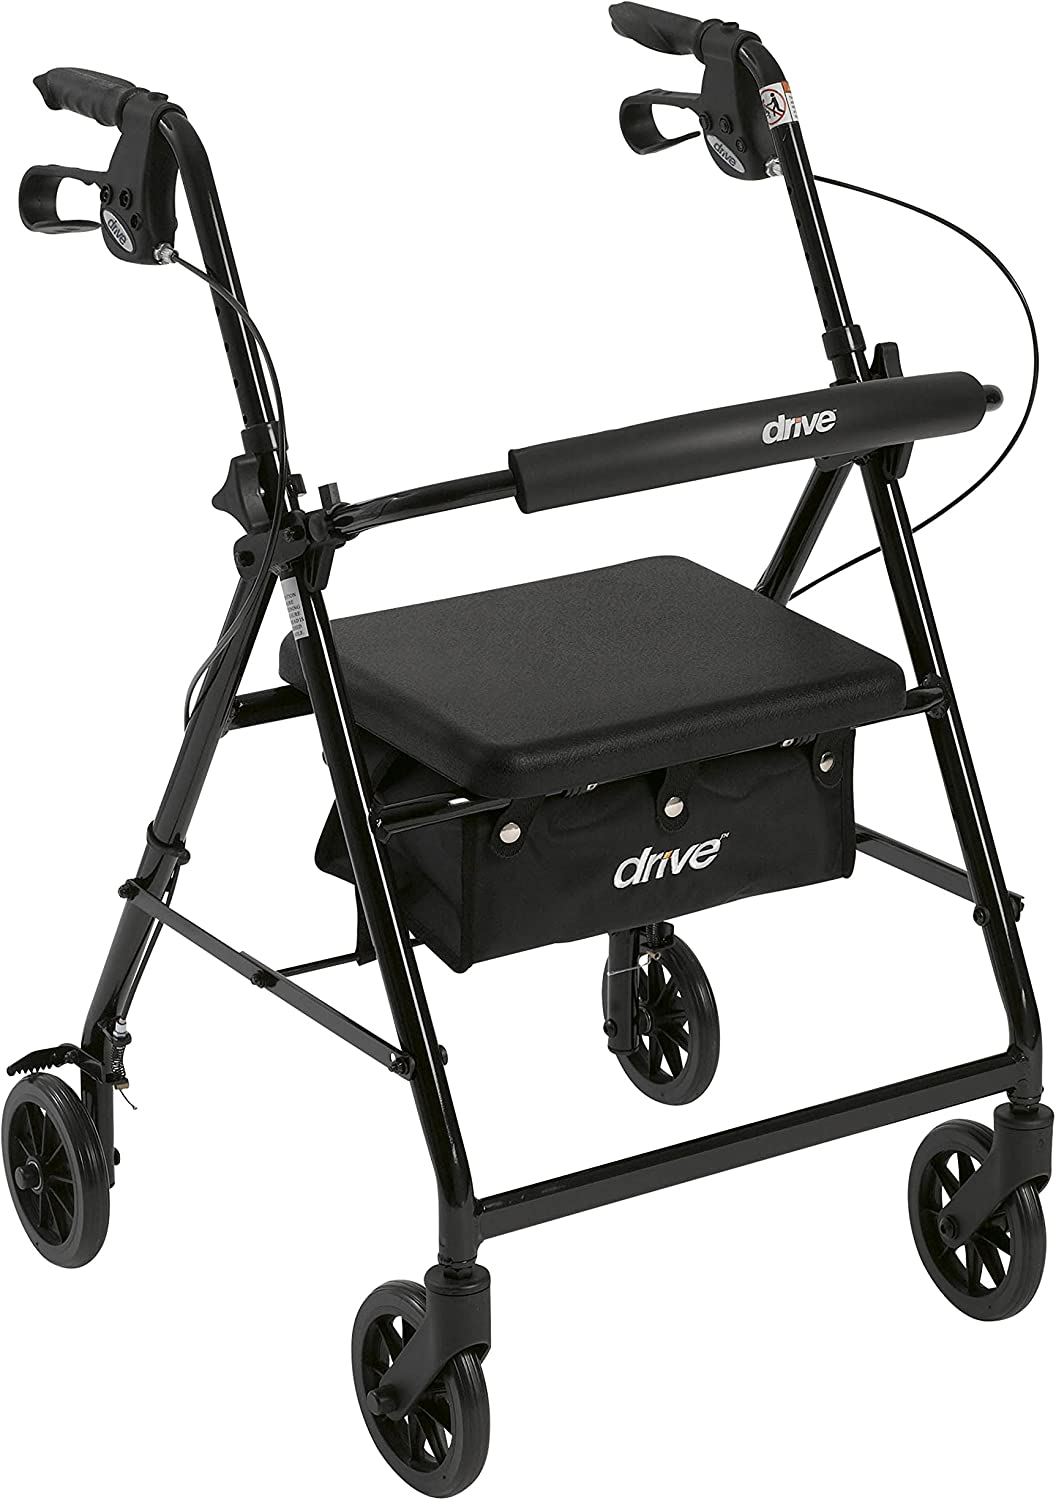 "Drive Medical Aluminum Rollator Walker Fold Up and Removable Back Support, Padded Seat, 6"" Wheels, Black: Complete Medical: Health & Personal Care"